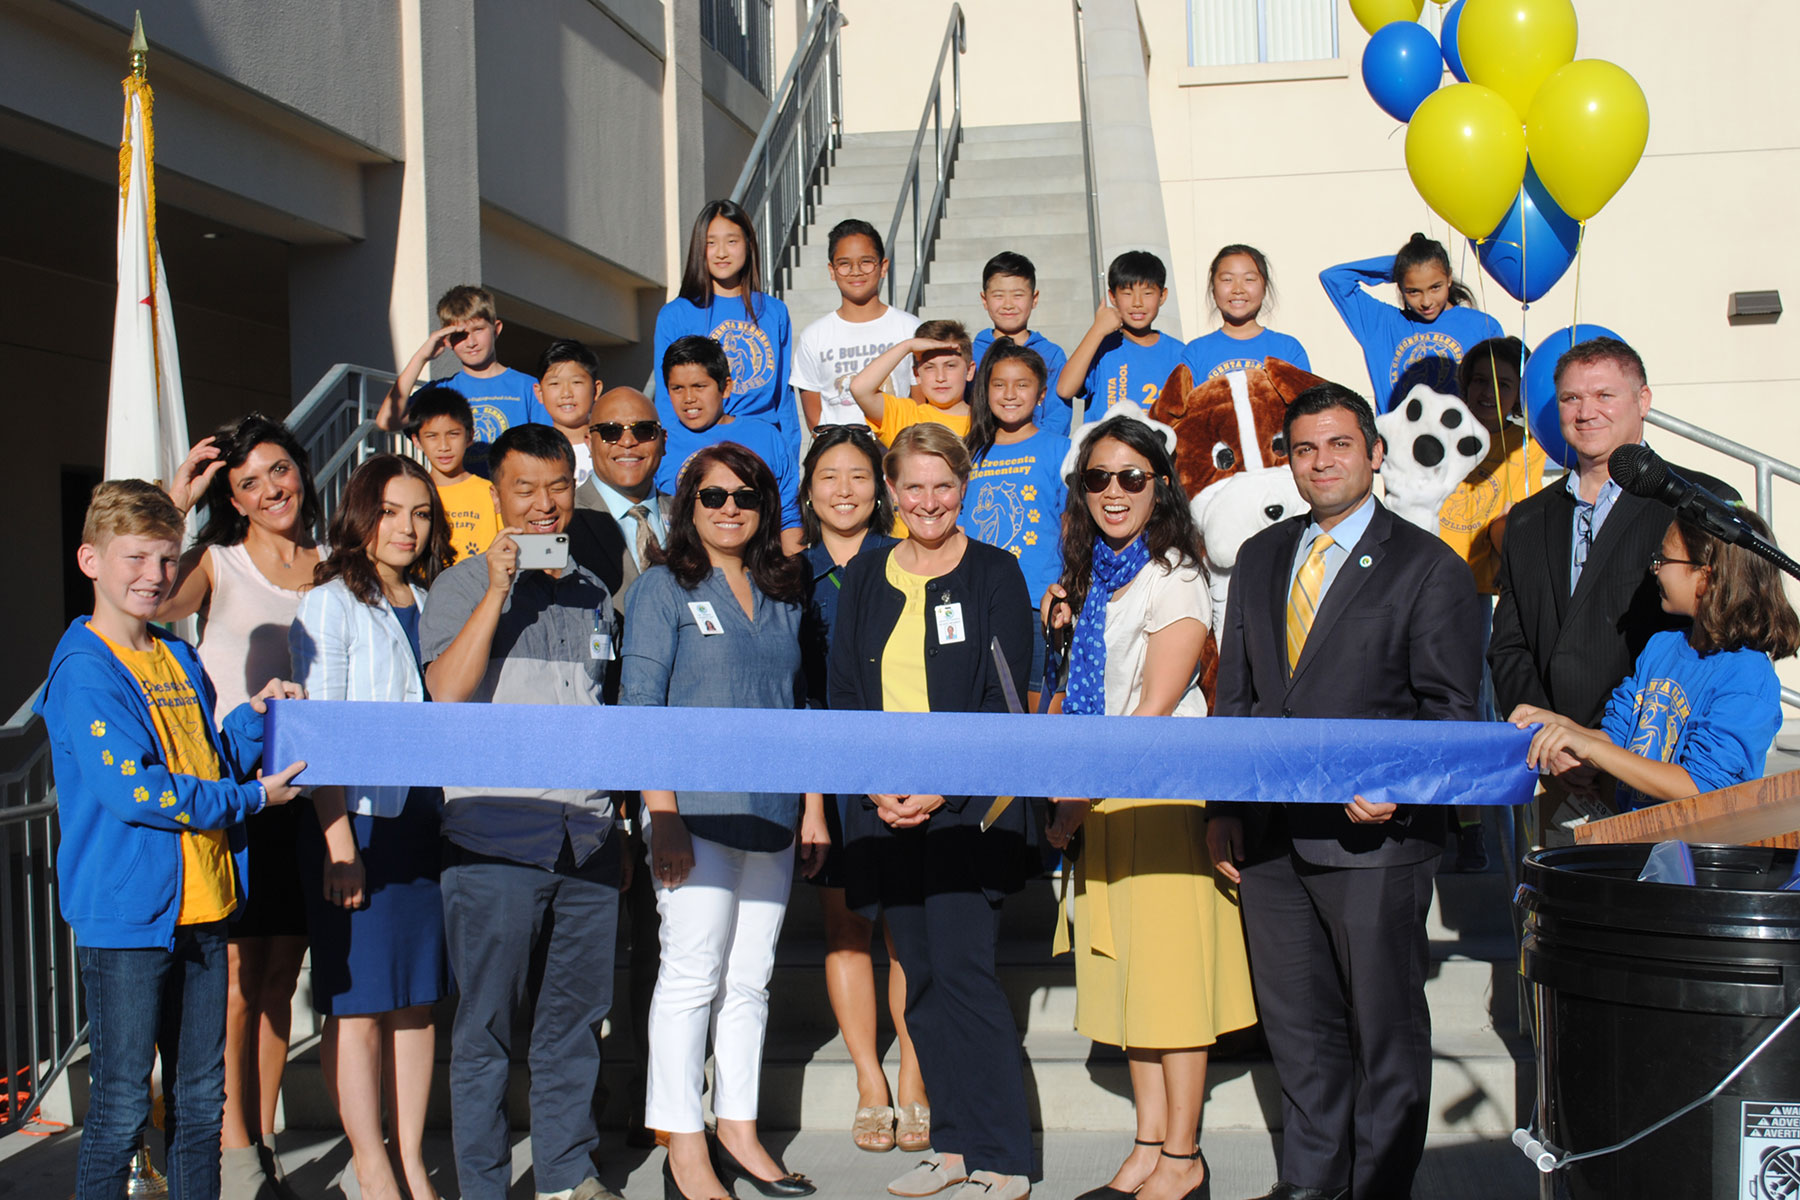 La Crescenta Elementary School Measure S Ribbon Cutting Ceremony November 2018